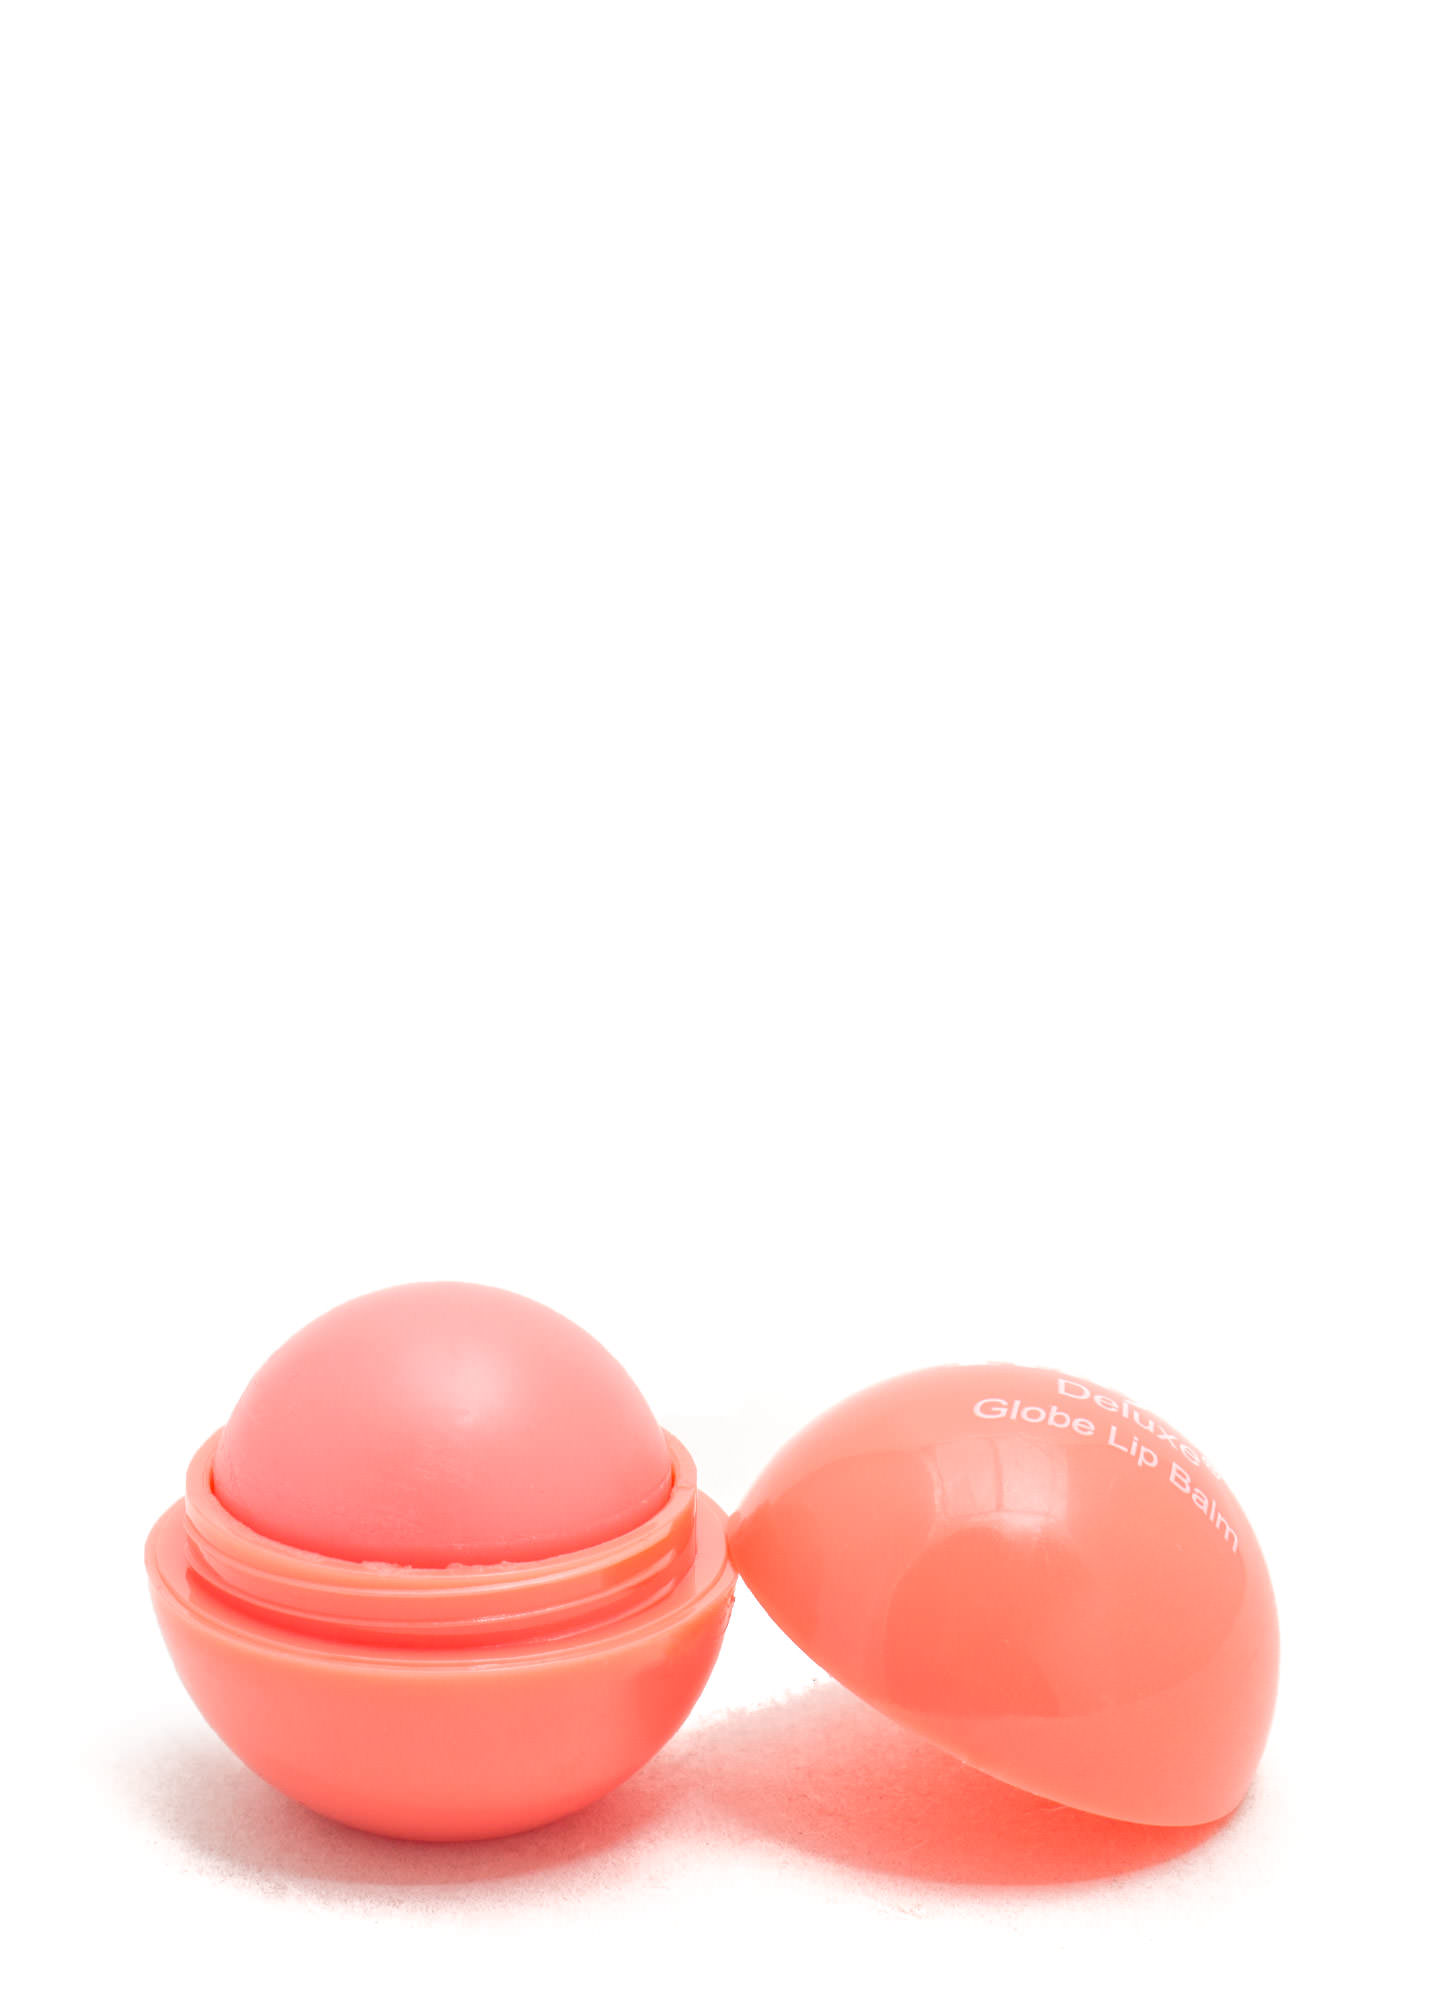 Sphere No Evil Lip Balm WATERMELON